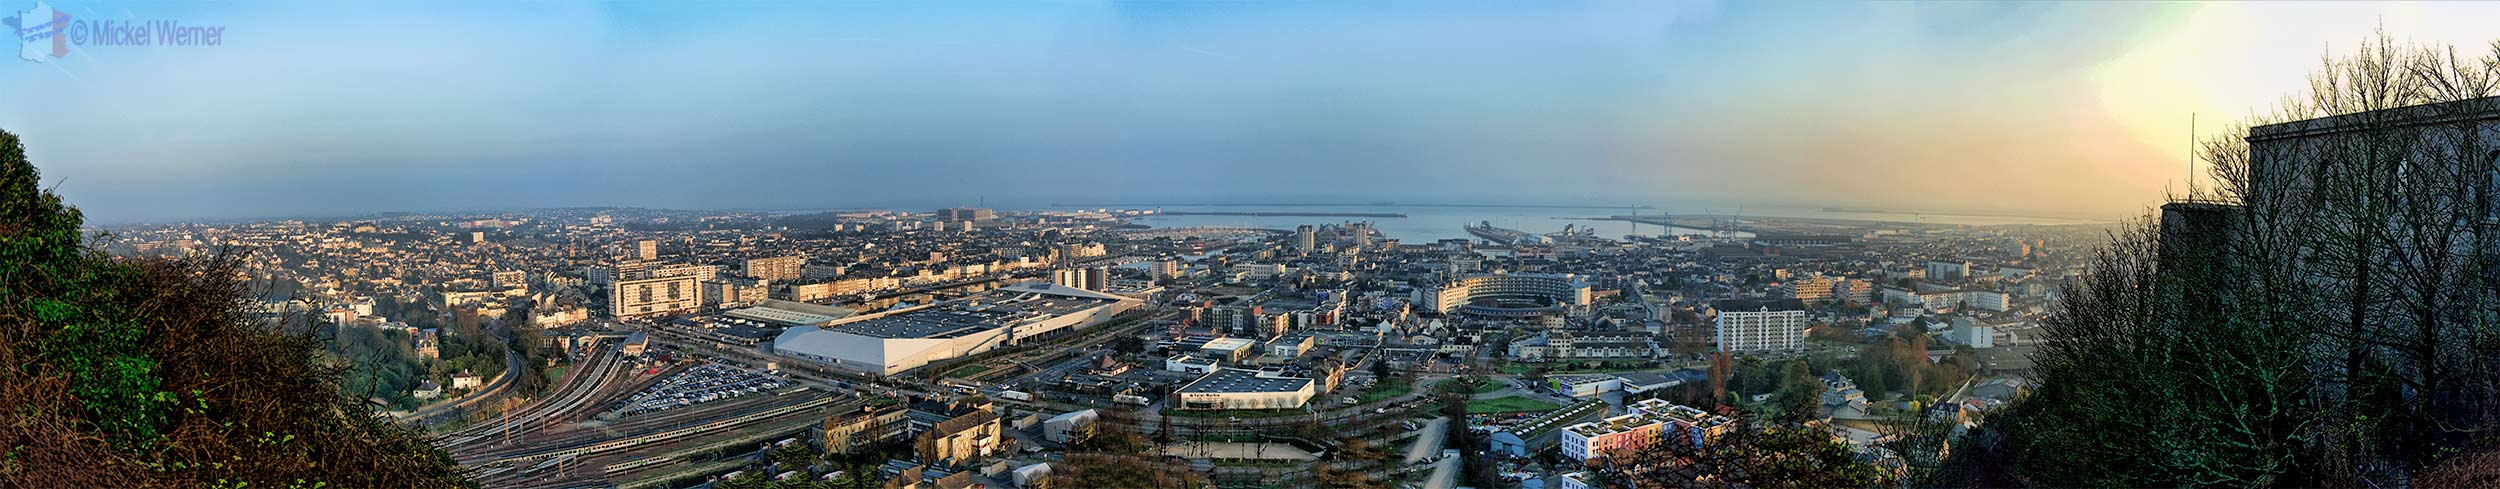 Cherbourg – Introduction